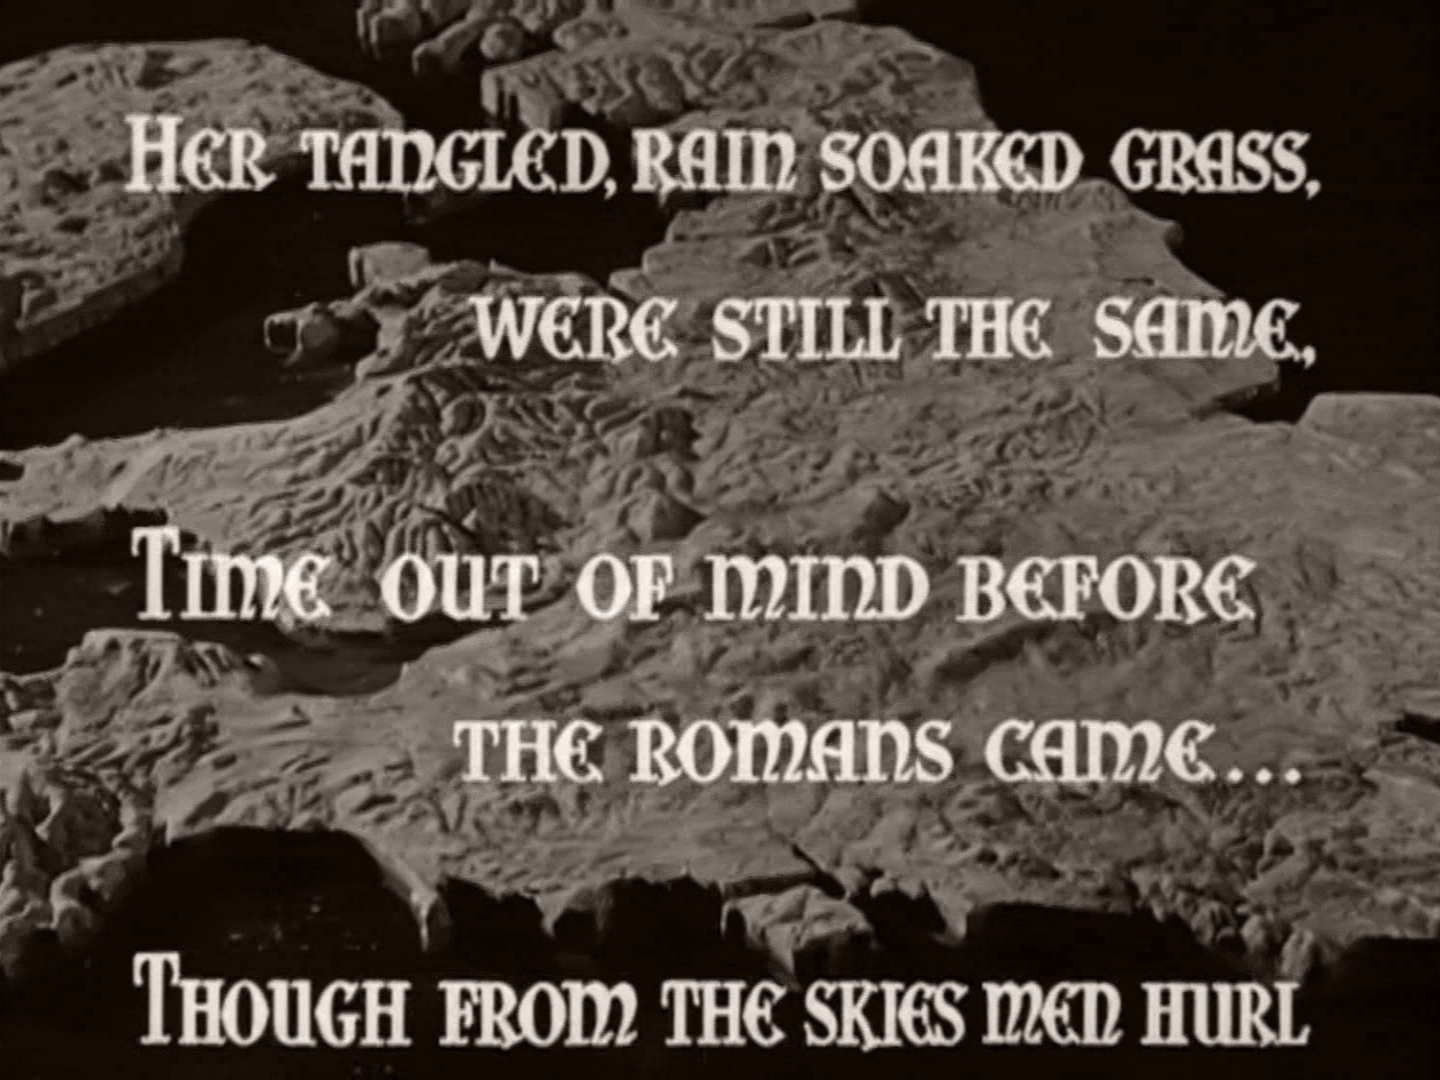 Main title from This England (1941) (3). Her tangled, rain soaked grass were still the same, time out of mind before the Romans came…